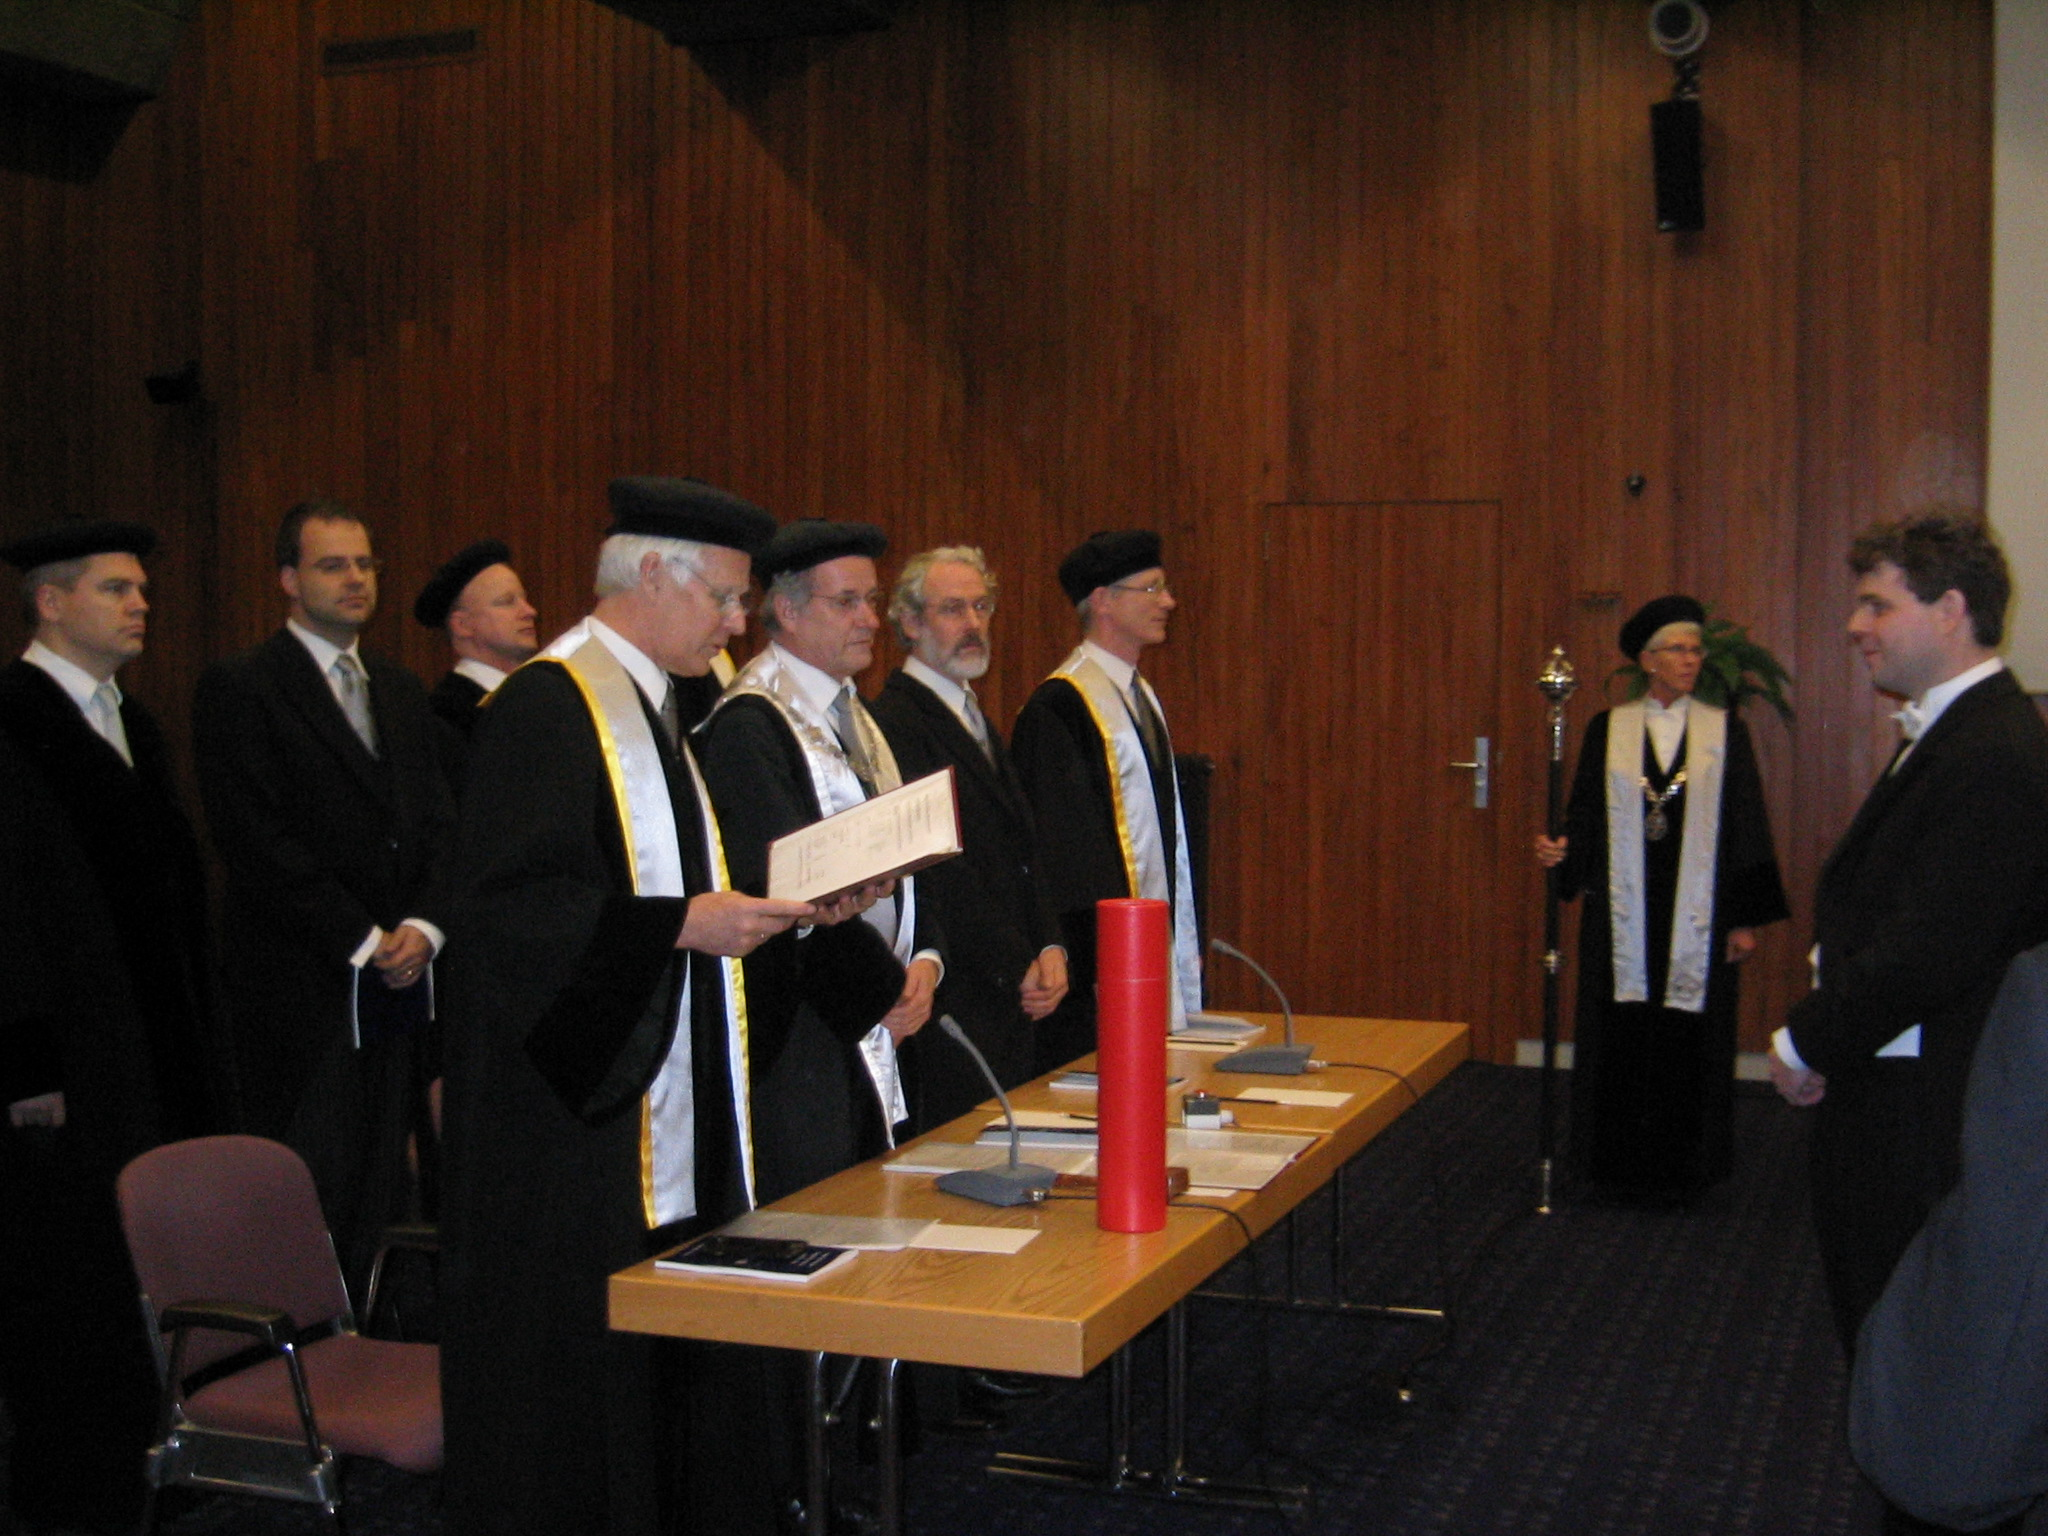 phd defense The purpose of the defense is to provide a thorough evaluation of the dissertation and the student's understanding of the research, as well as the student's ability to report information to the scientific community in a well-organized and interesting form.